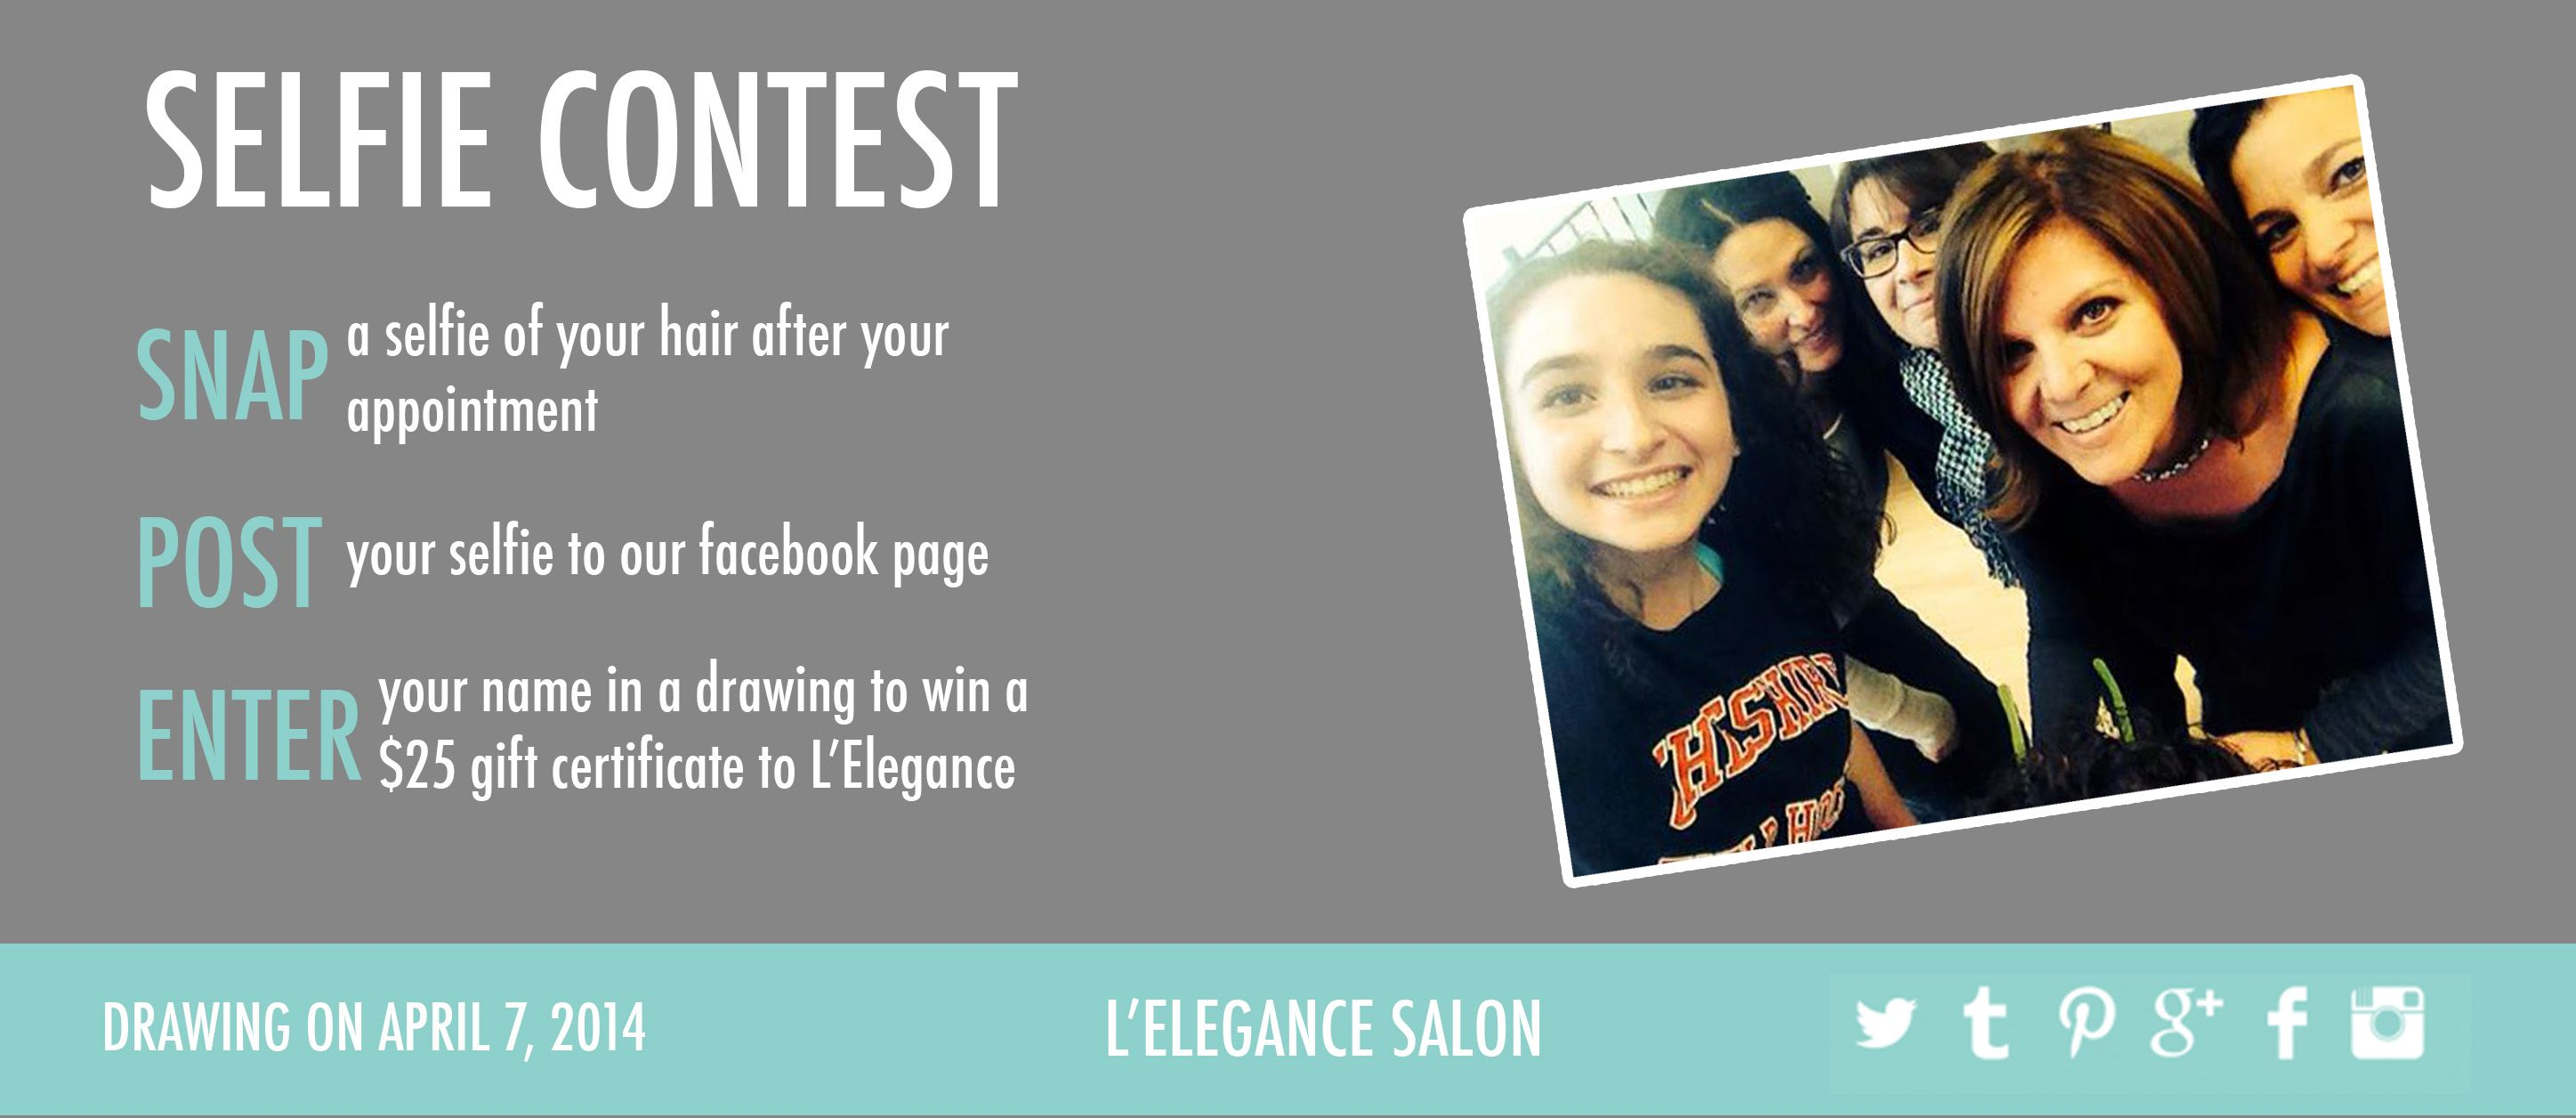 selfie contest! #selfie #hair #salon  Hair salon marketing, Salon